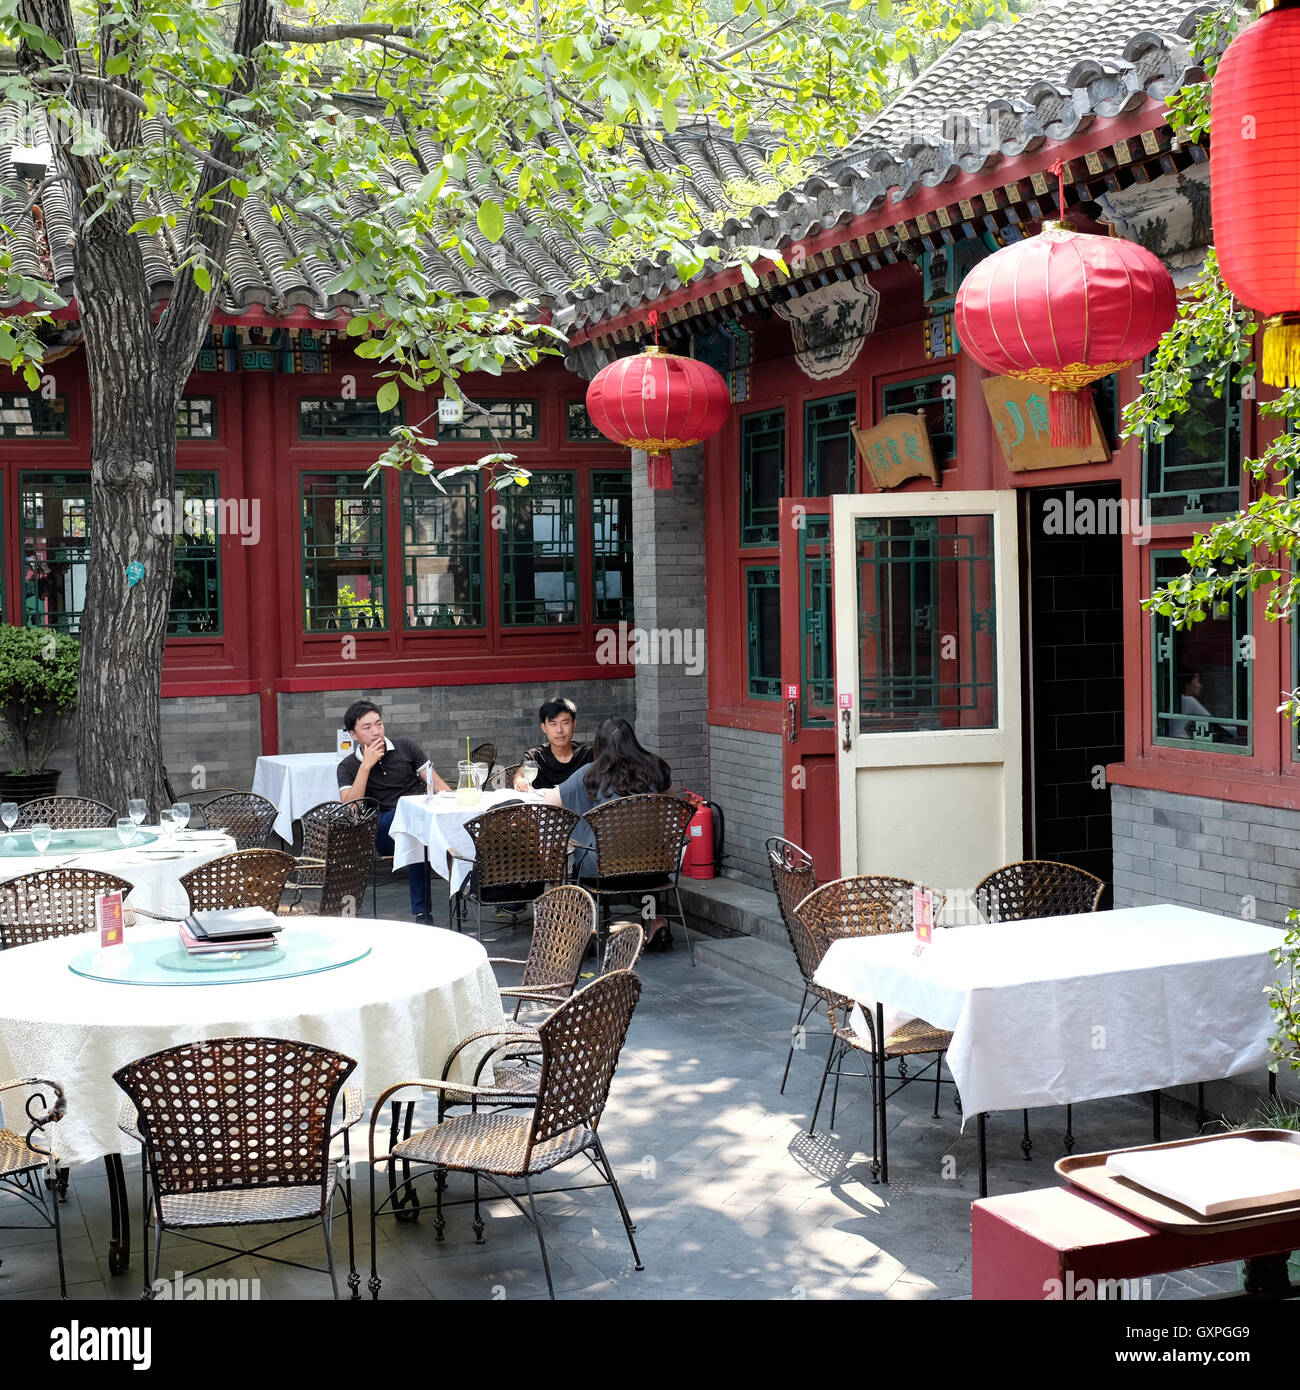 A restaurant innovated from a Beijing Traditional Quadrangle in Houhai lake area in Beijing, China. - Stock Image